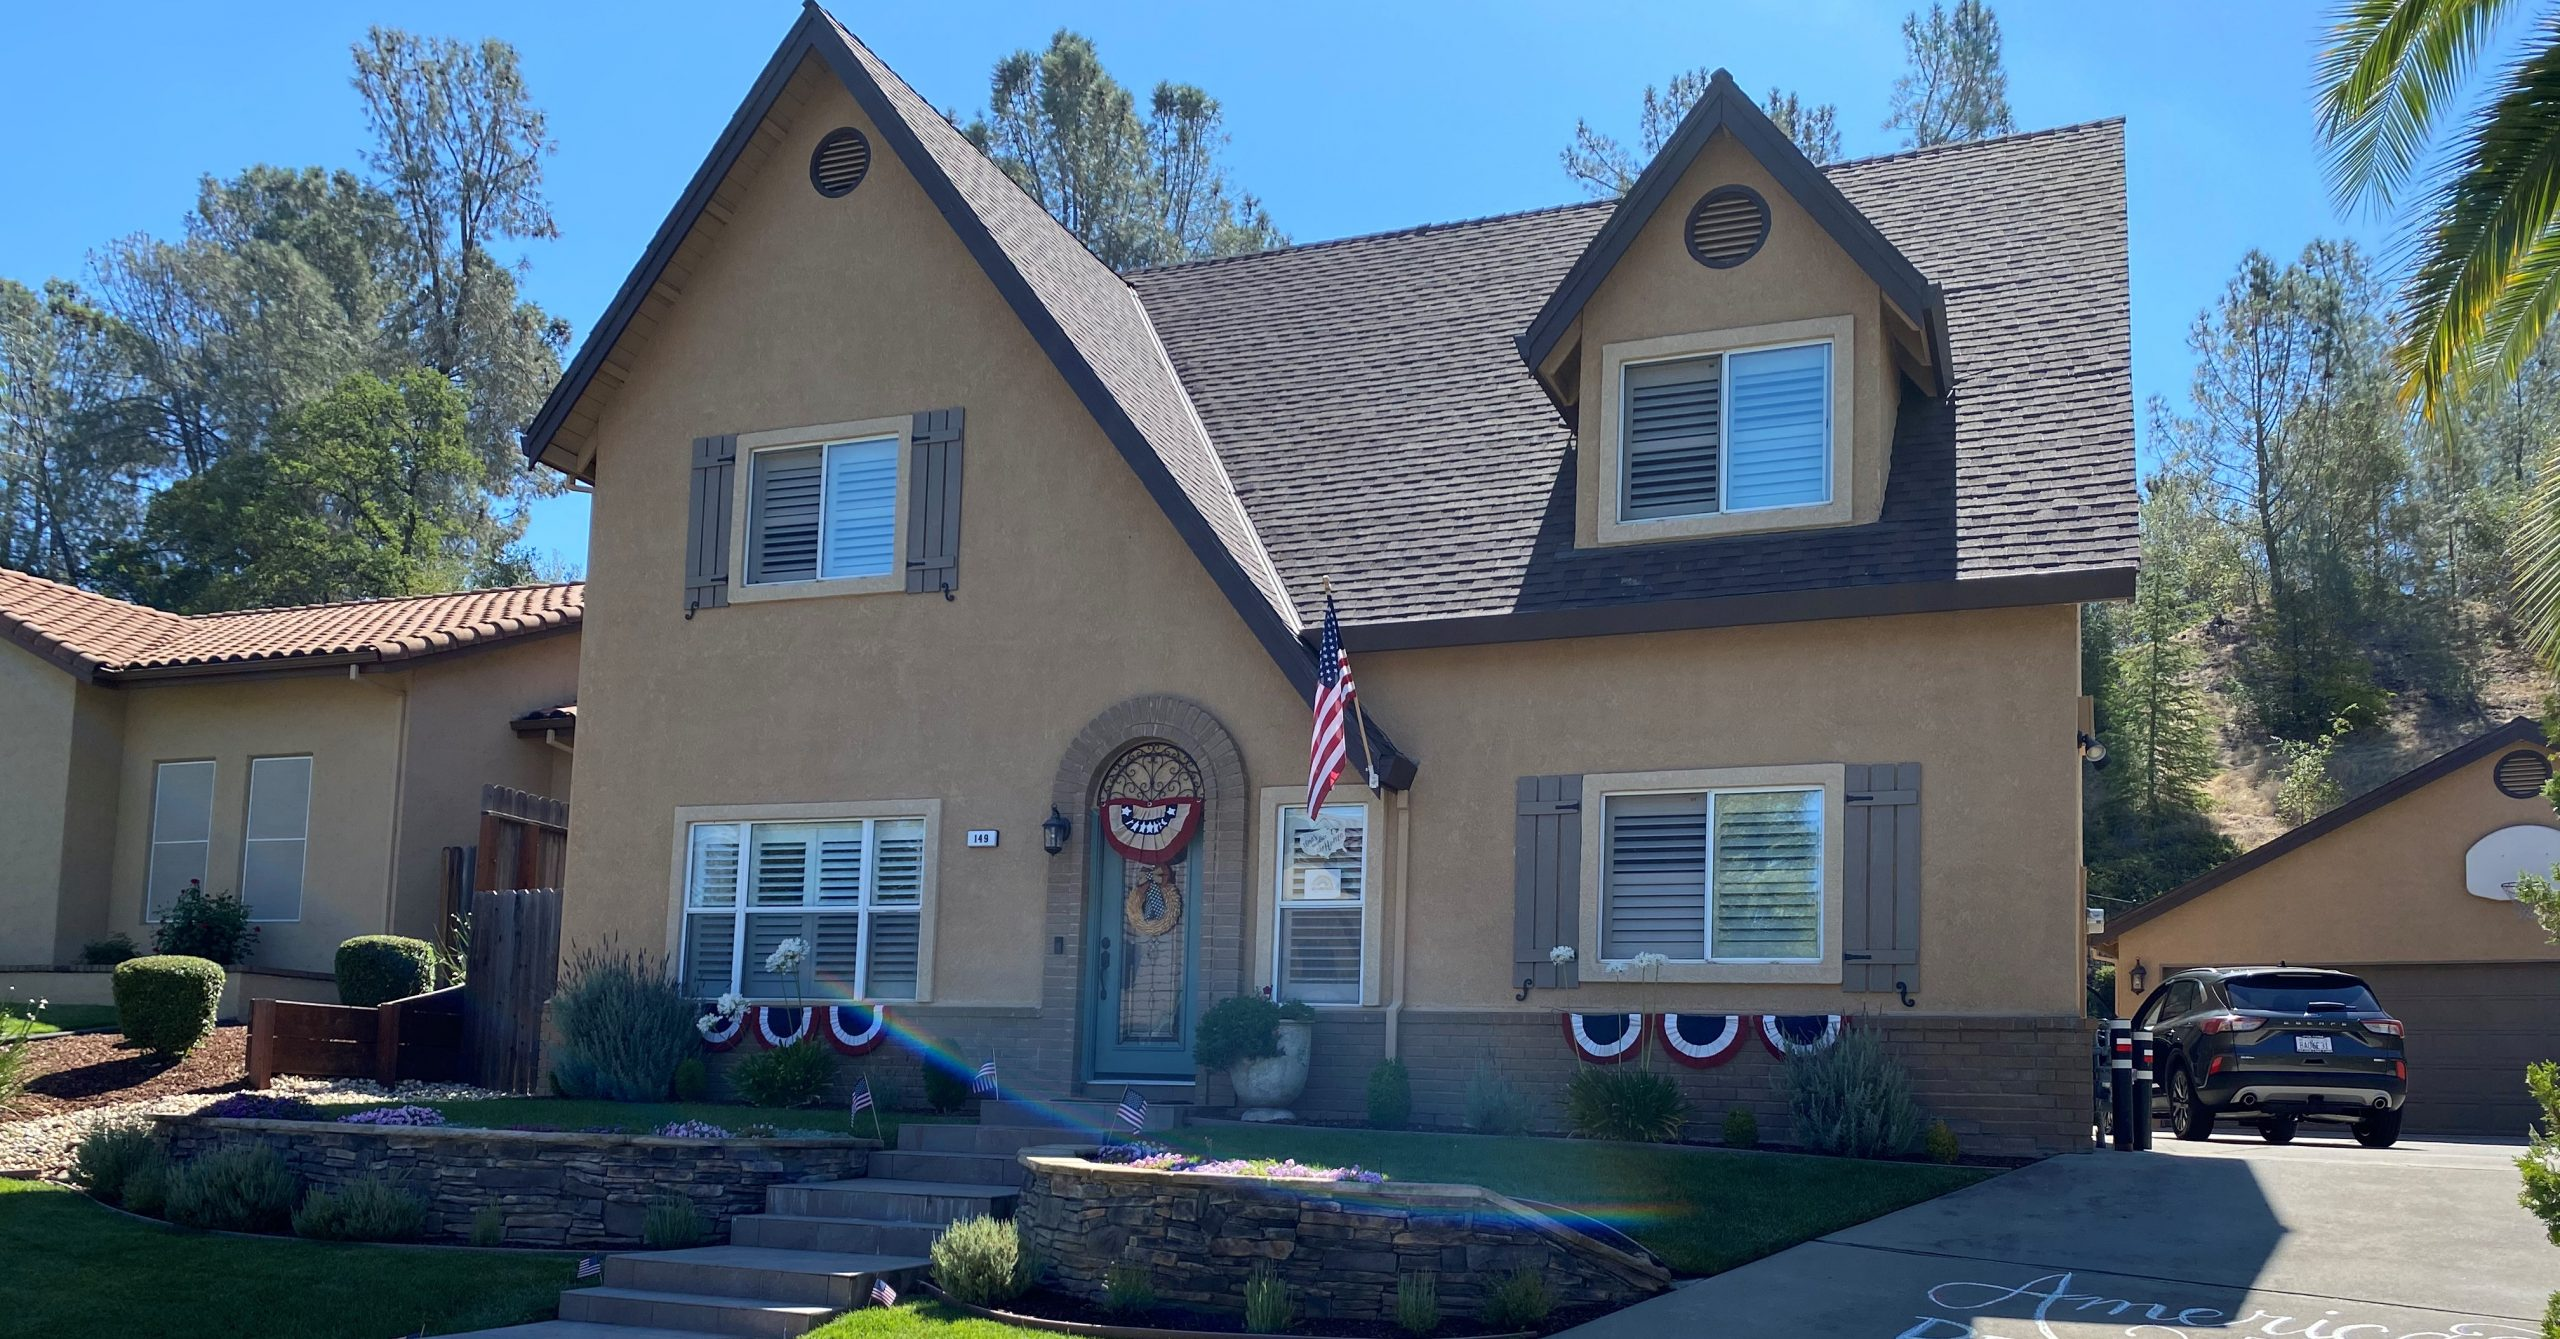 Exterior House Painting Project in Folsom, CA Before